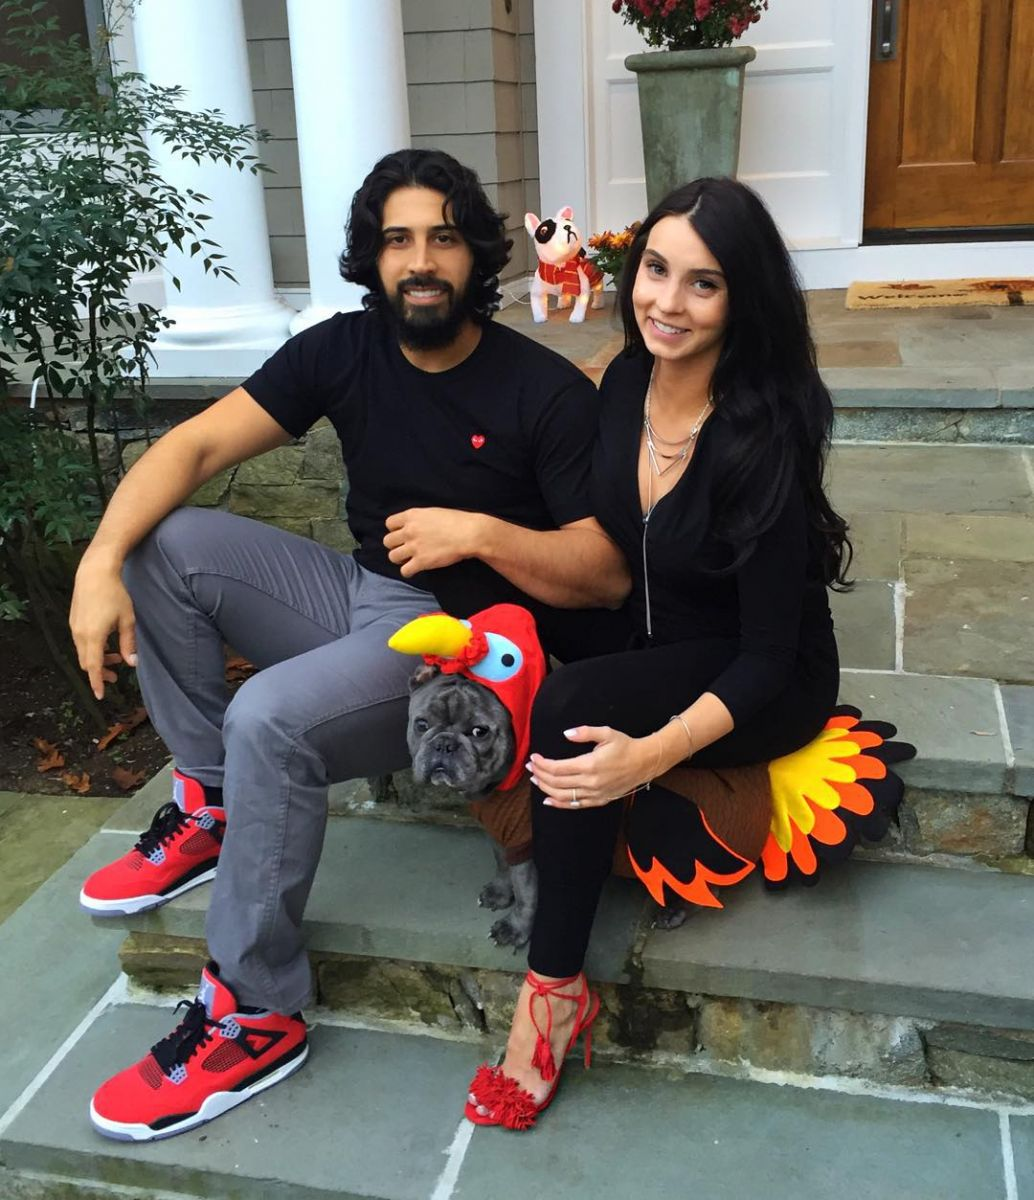 Gio Gonzalez wearing the 'Toro' Air Jordan 4